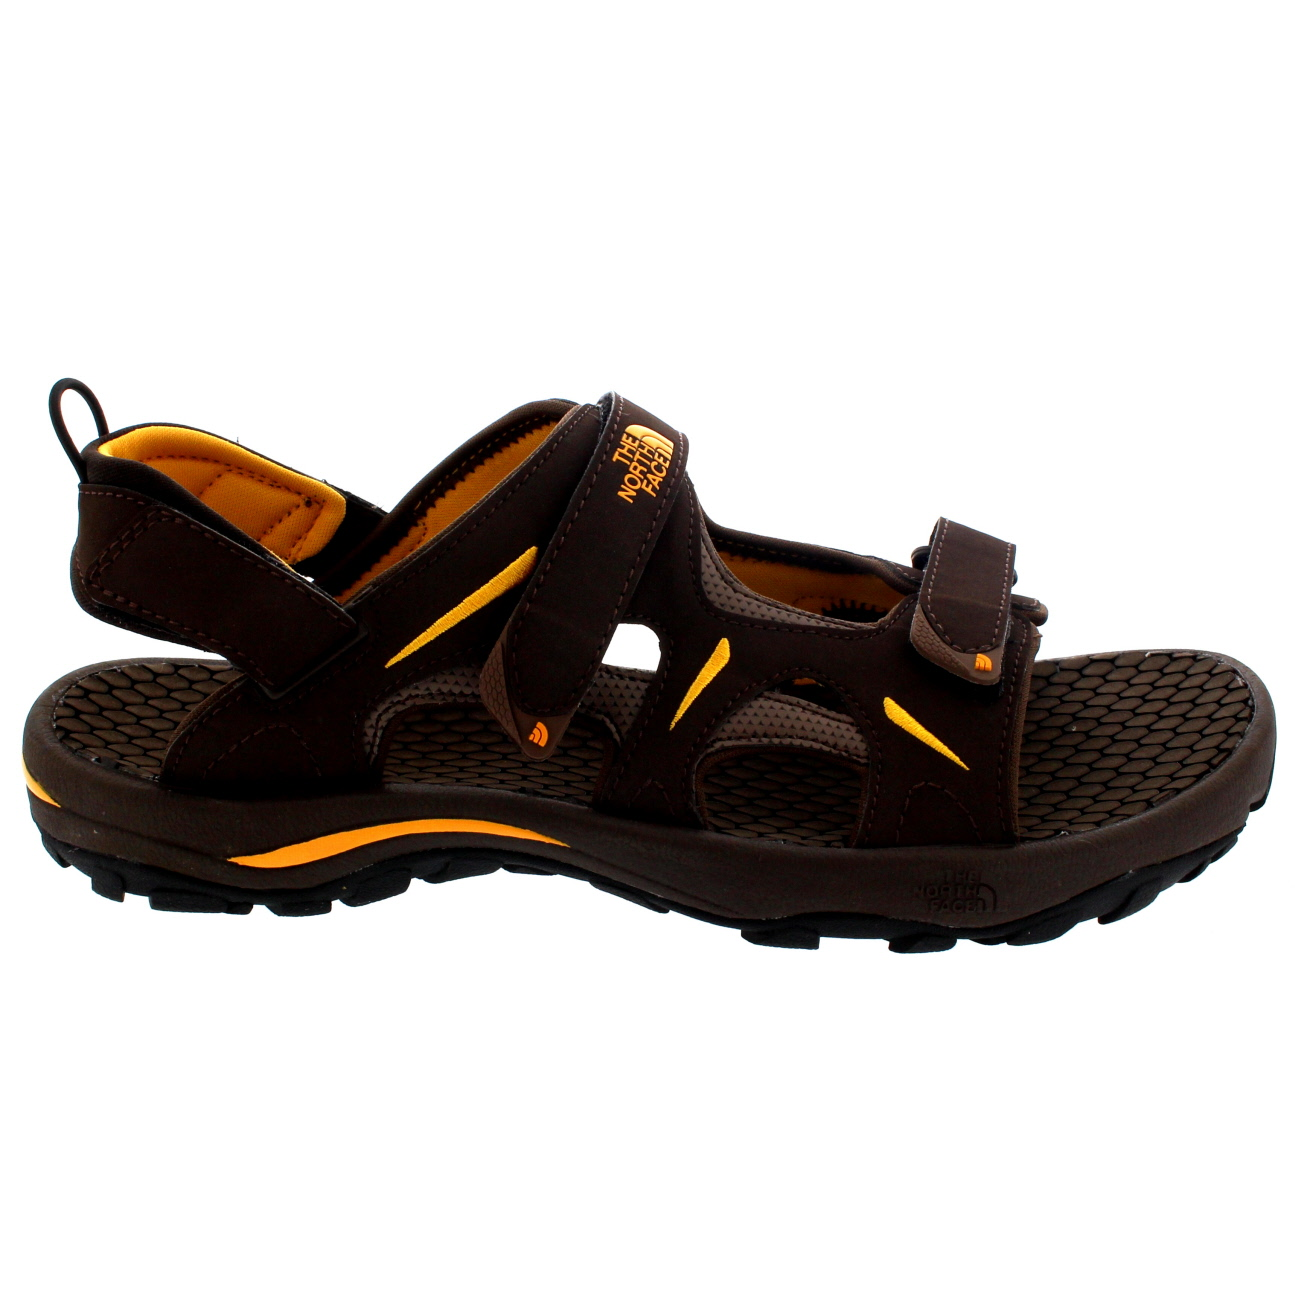 homme the north face hedgehog sandal trekking randonn e chaussures de marche sandales uk 7 12 ebay. Black Bedroom Furniture Sets. Home Design Ideas